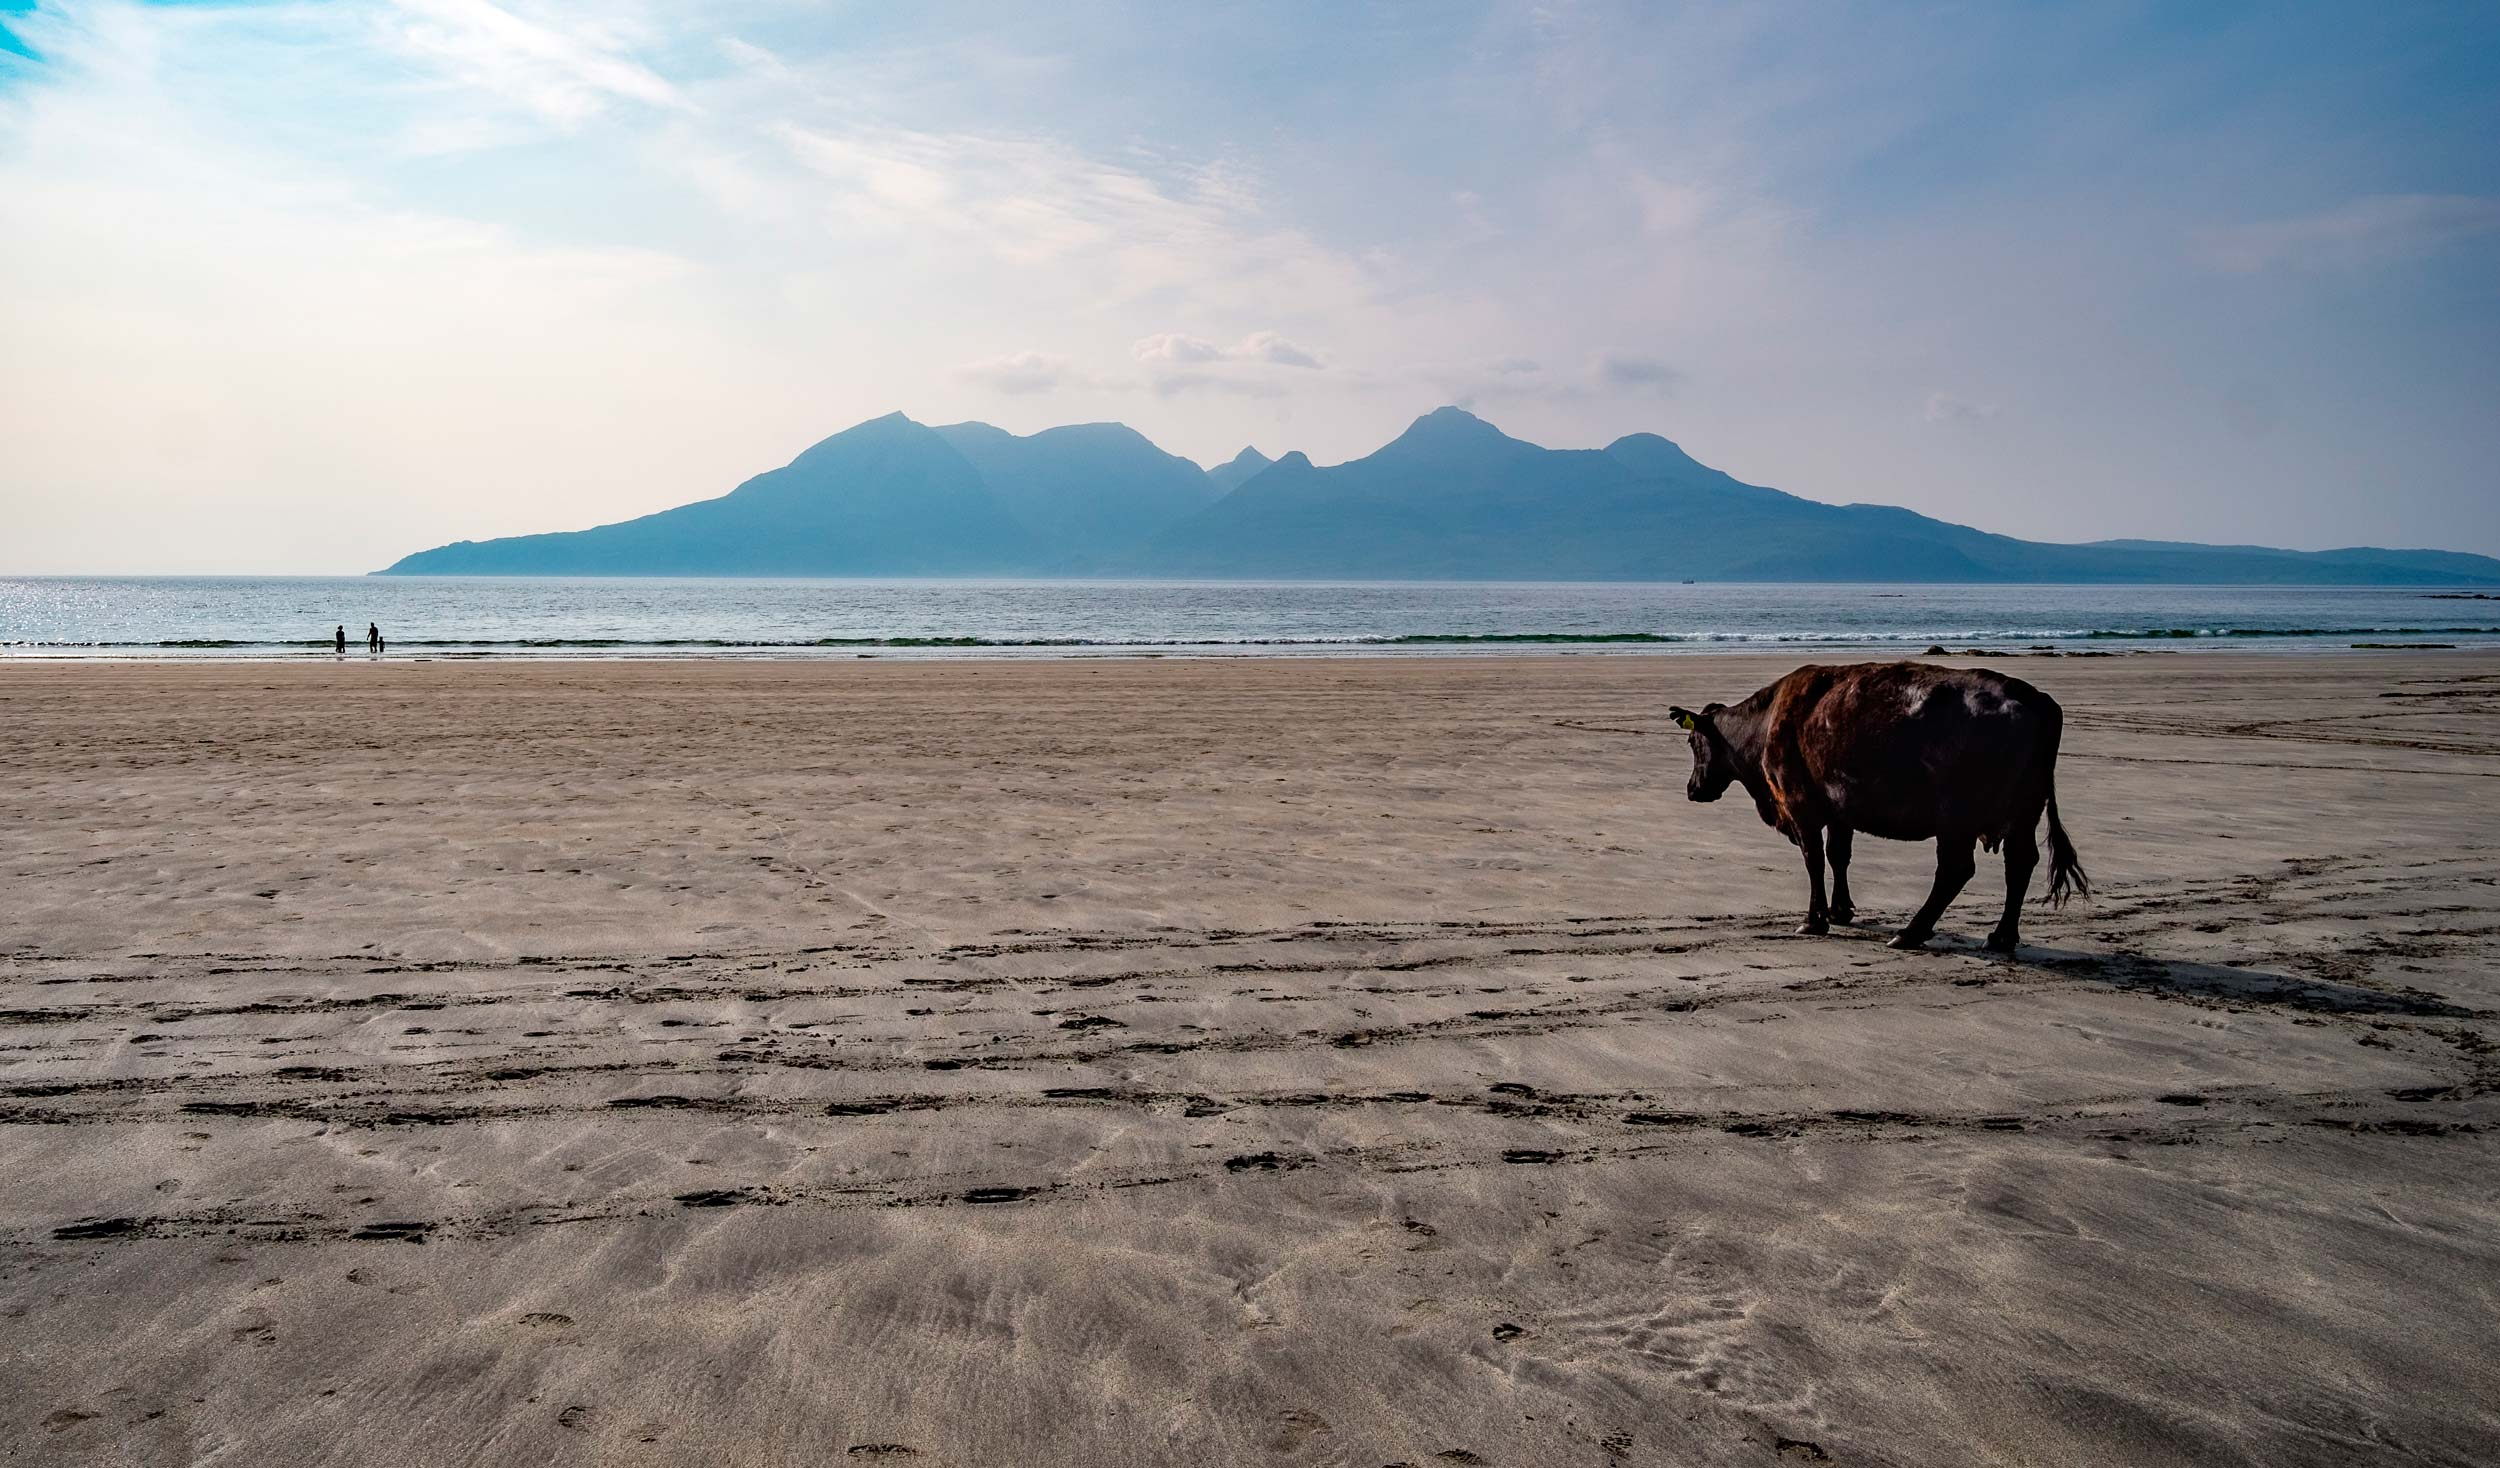 The Rum Cuillin, and a large cow, seen from a beach on Eigg, one of the Small Isles, Scotland  (Mark David Williams/Shutterstock)